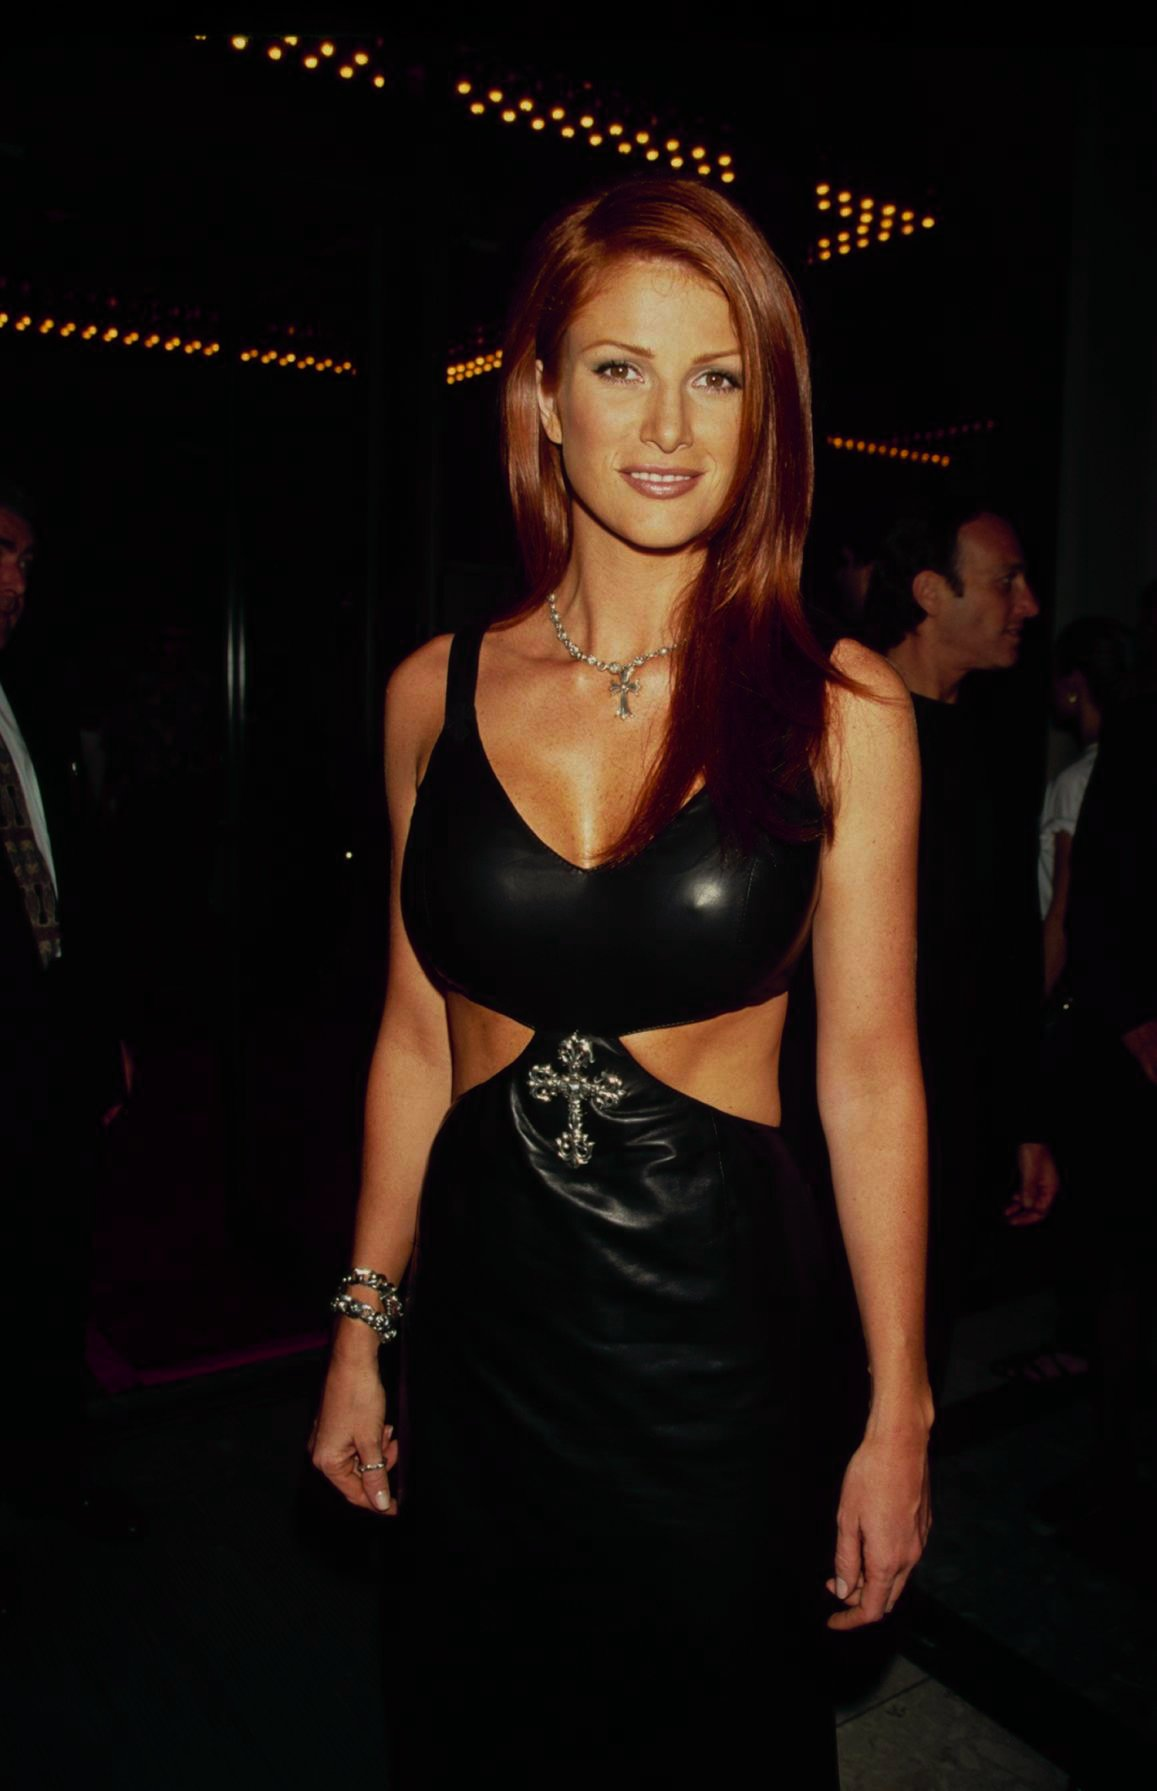 Angie Everhart after breast implant surgery